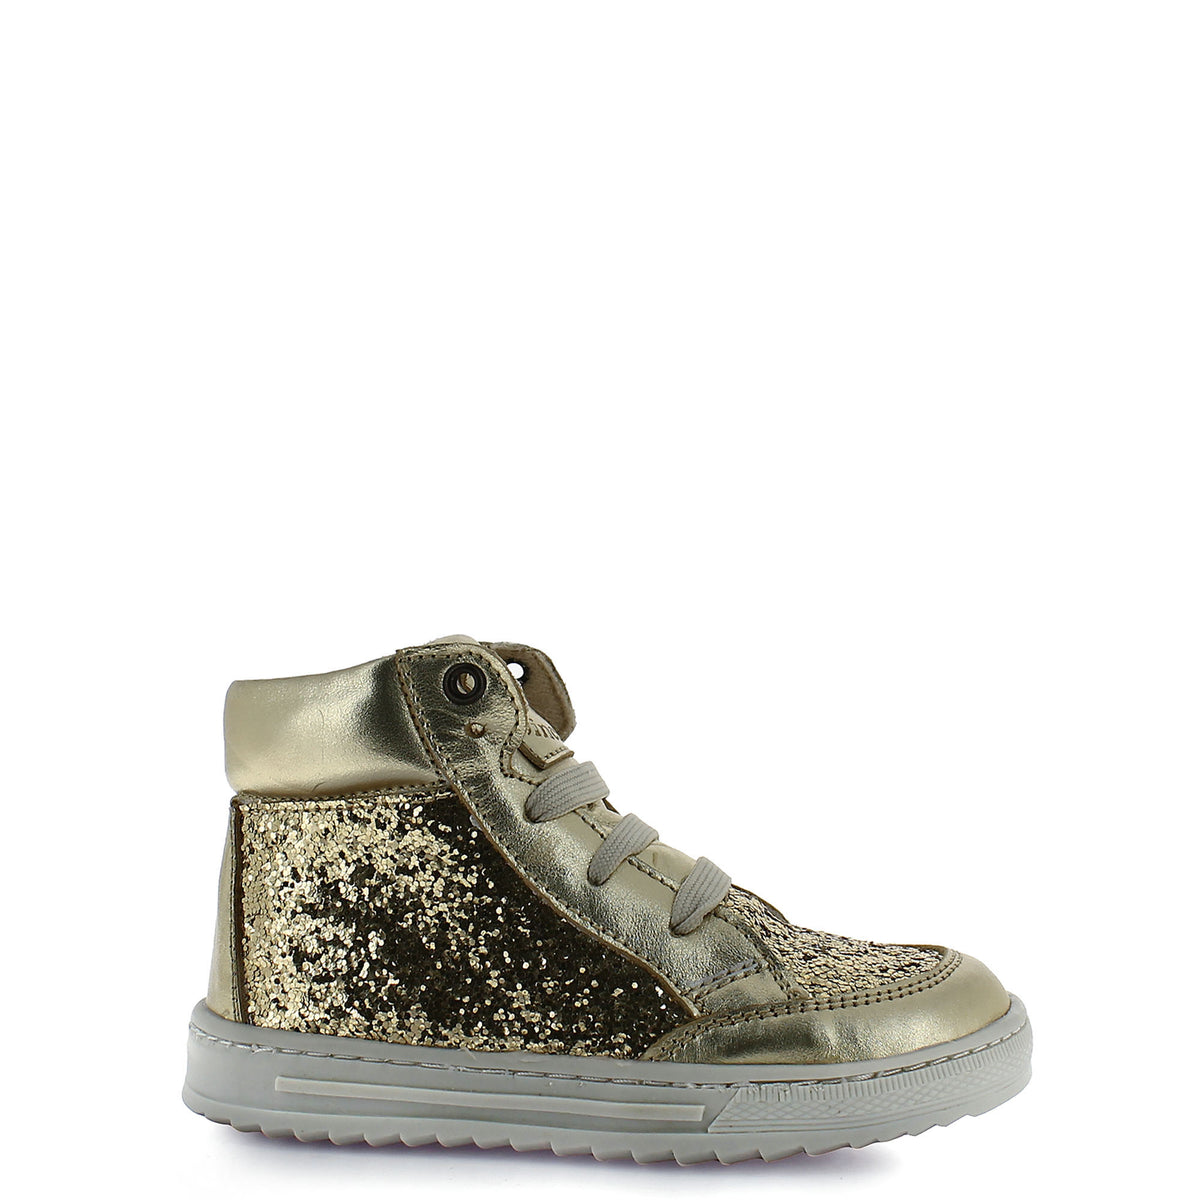 Kid's gold leather tennis shoes – True